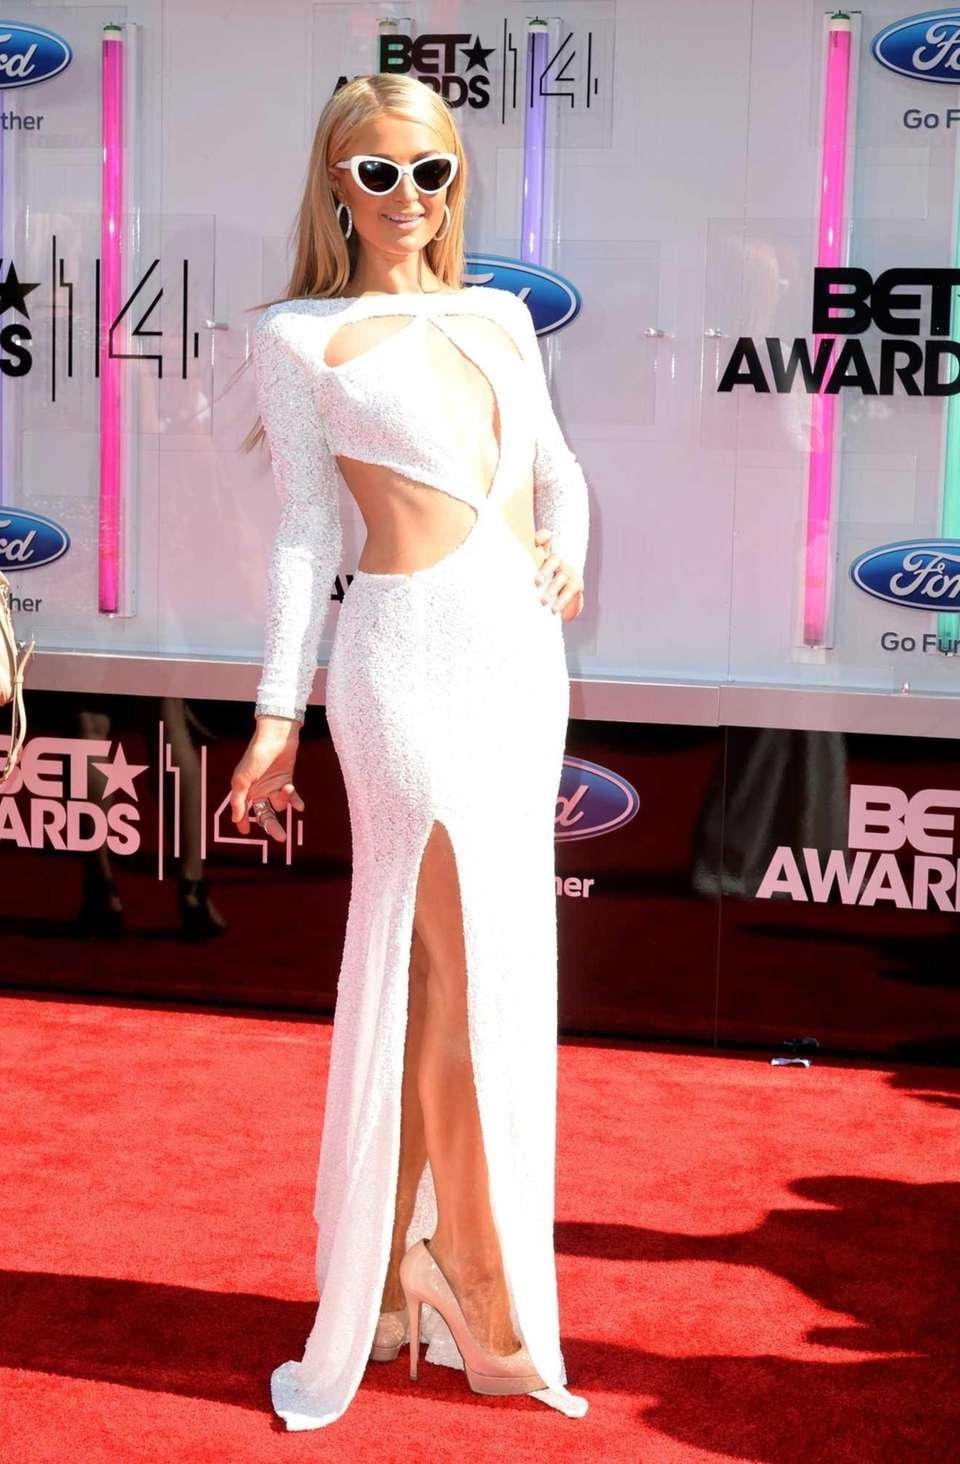 Paris Hilton attends the BET Awards at Nokia